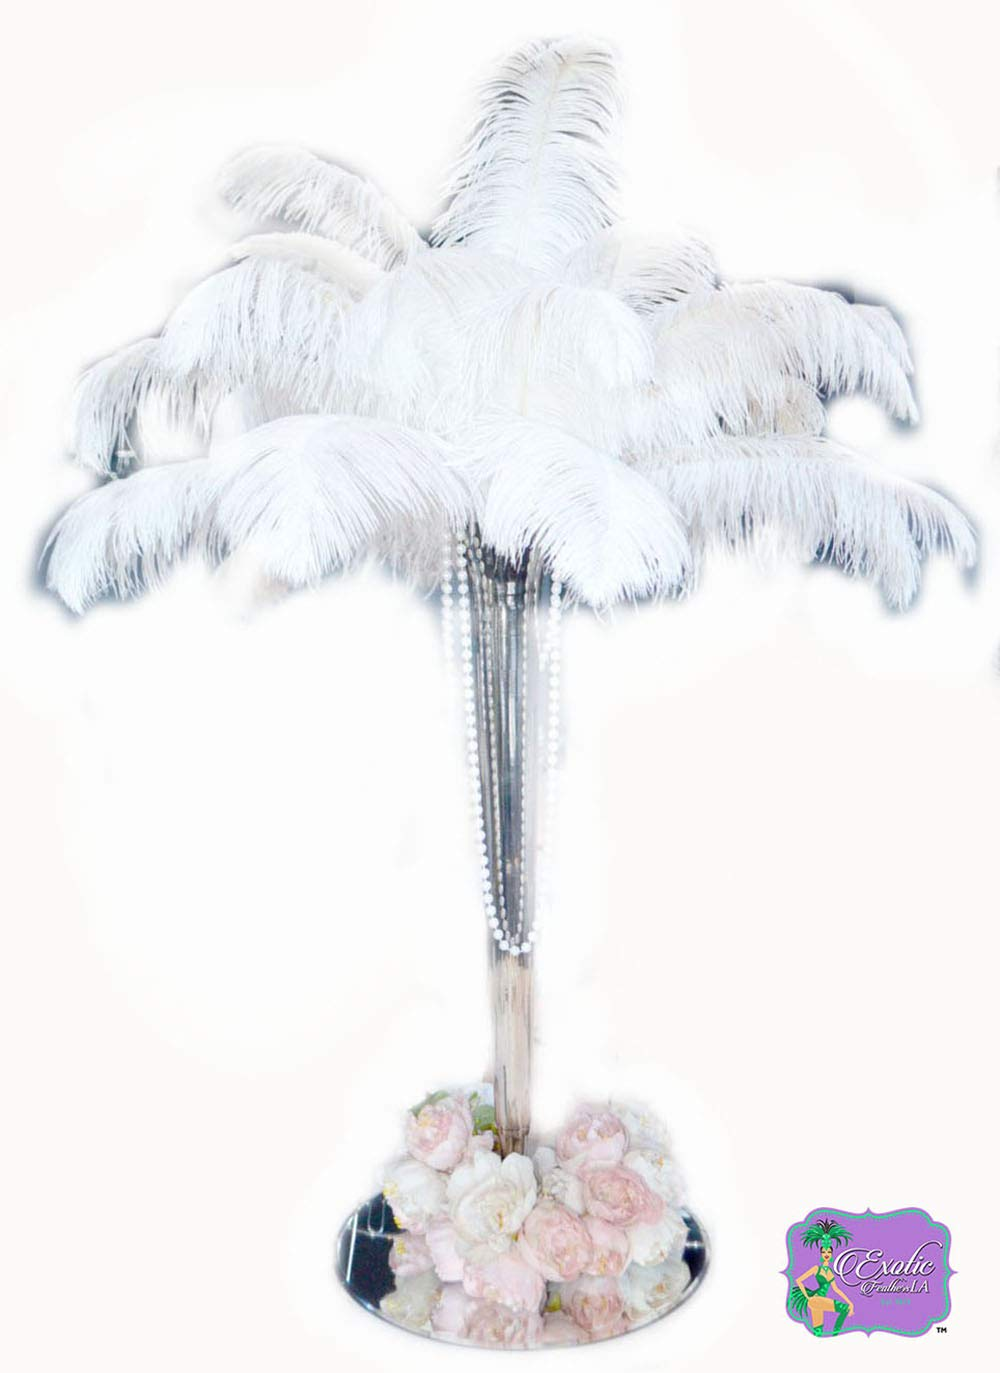 25 pieces Special Sale Genuine OSTRICH Feathers Wholesale Bulk 11//14 long DELUXE Feathers BLEACH WHITE